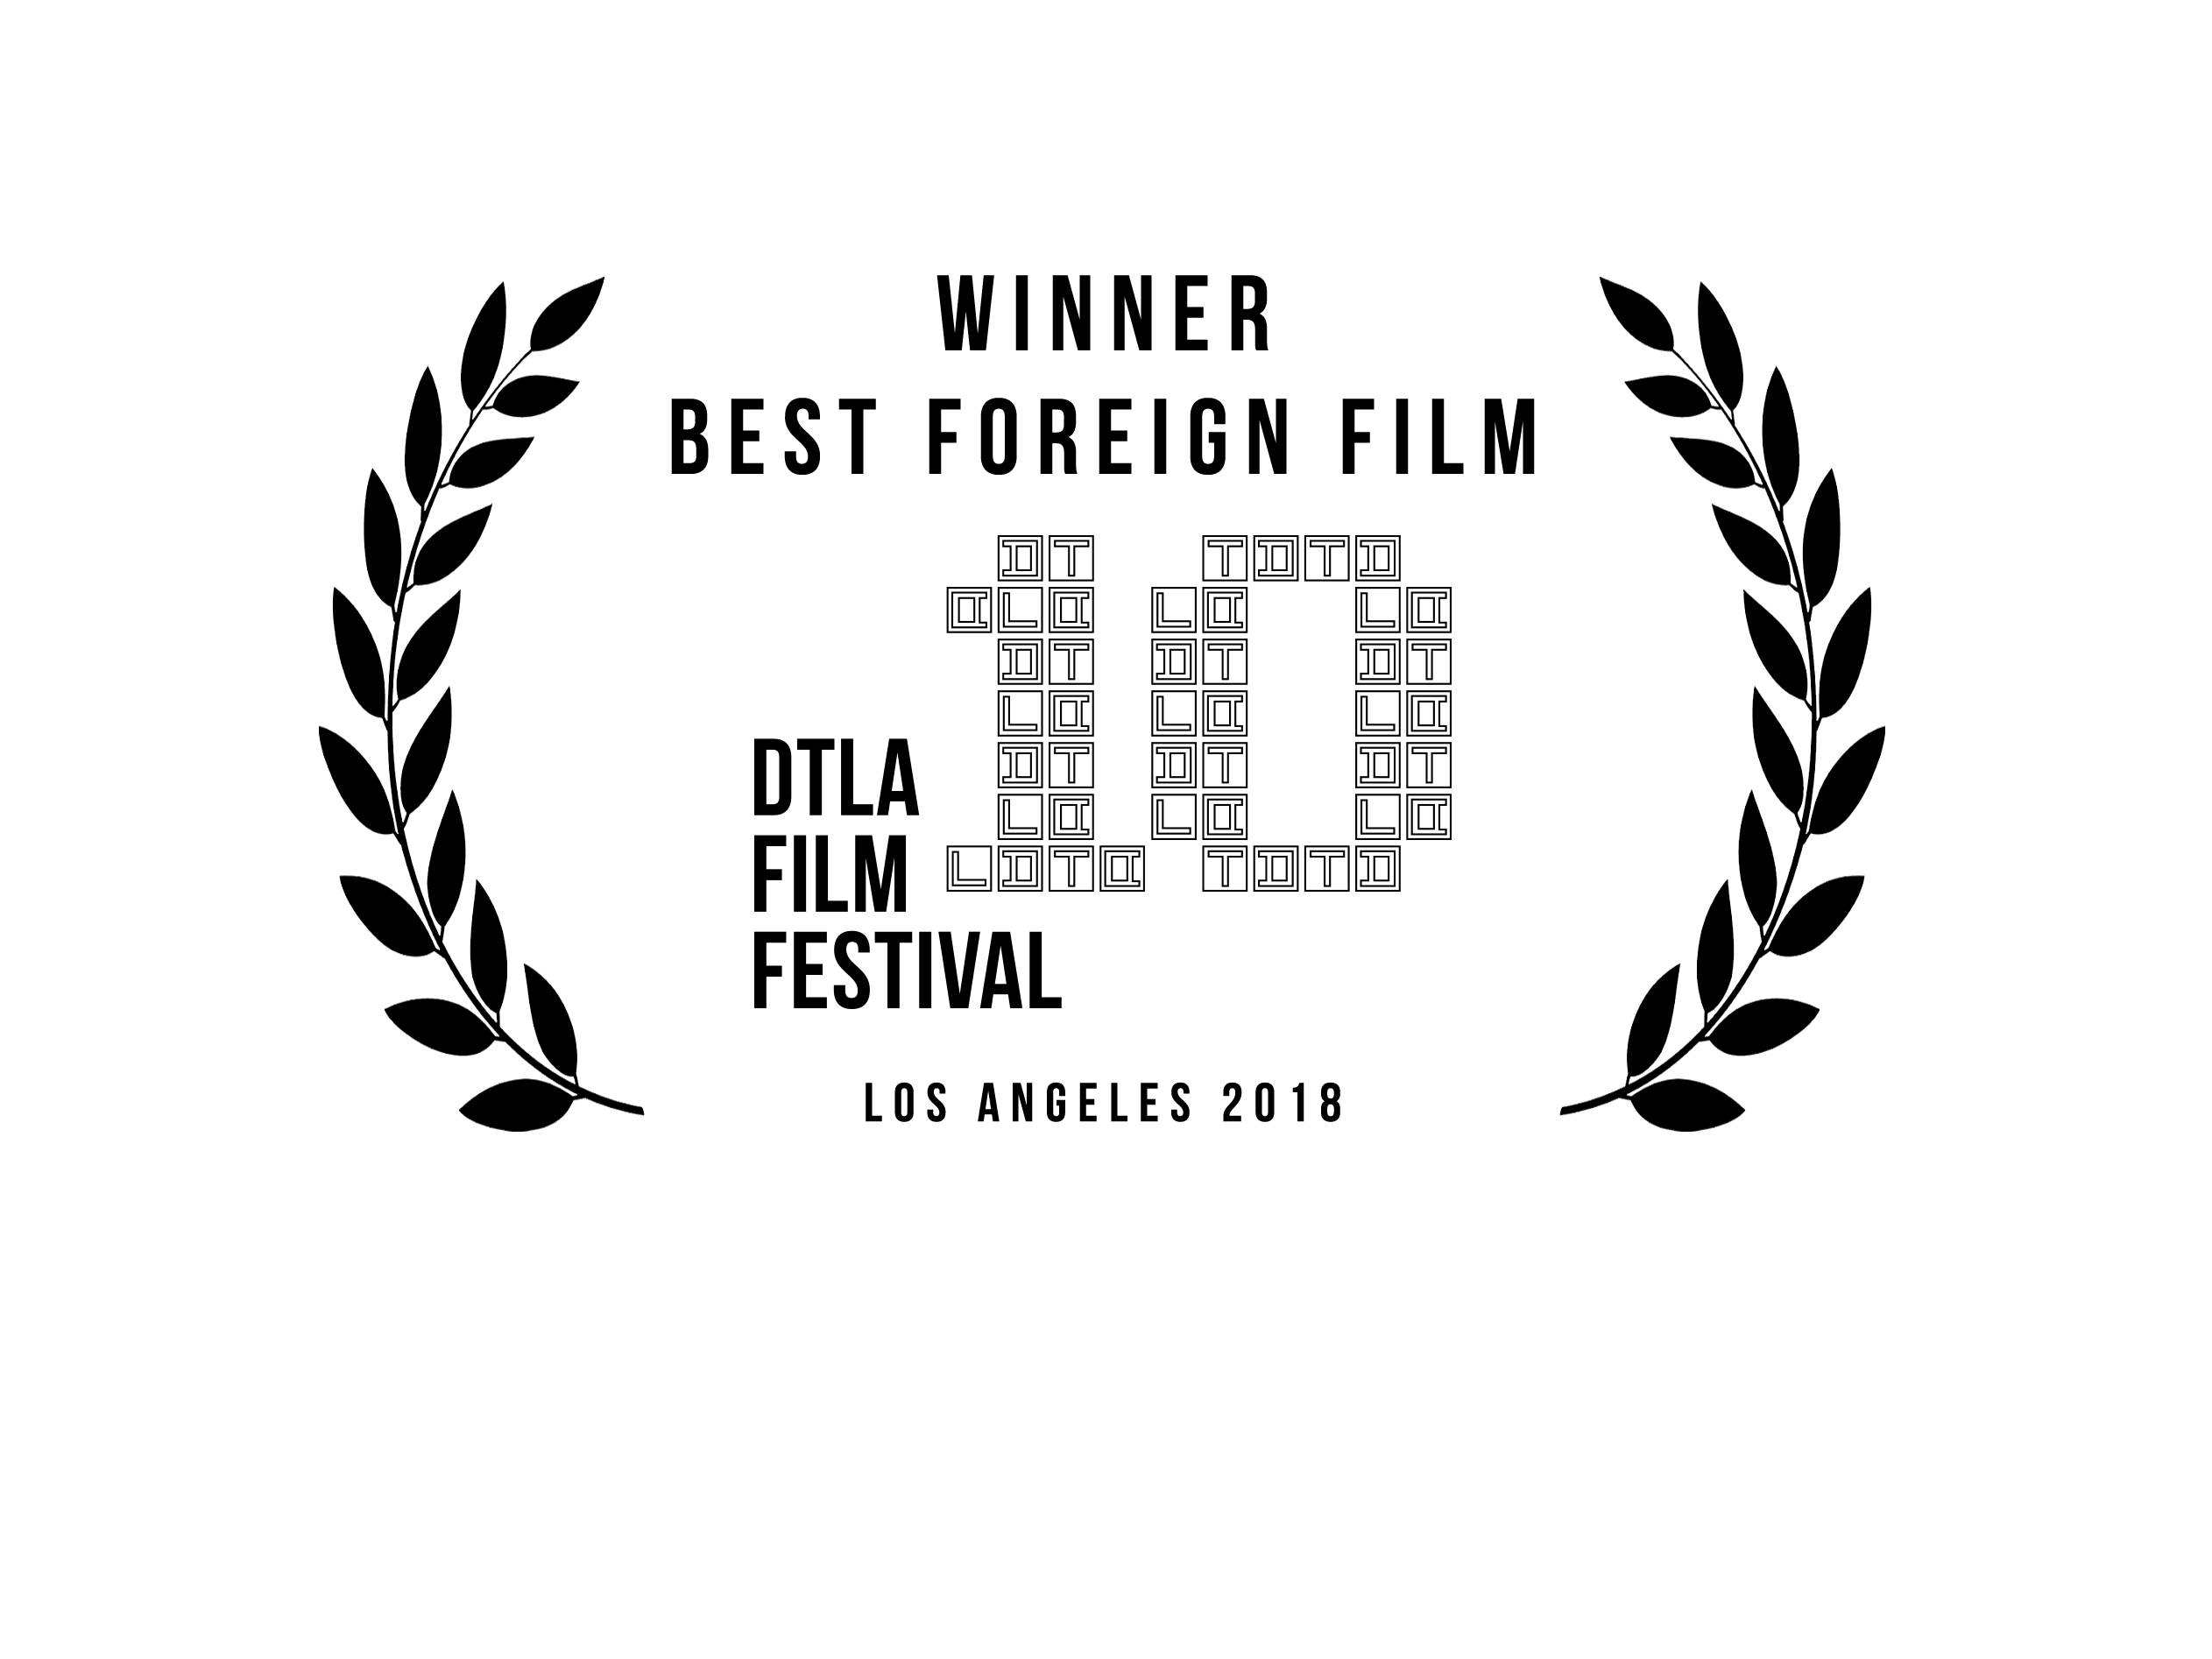 Best Foreign Film_Black_DTLAFF-WINNER-LA